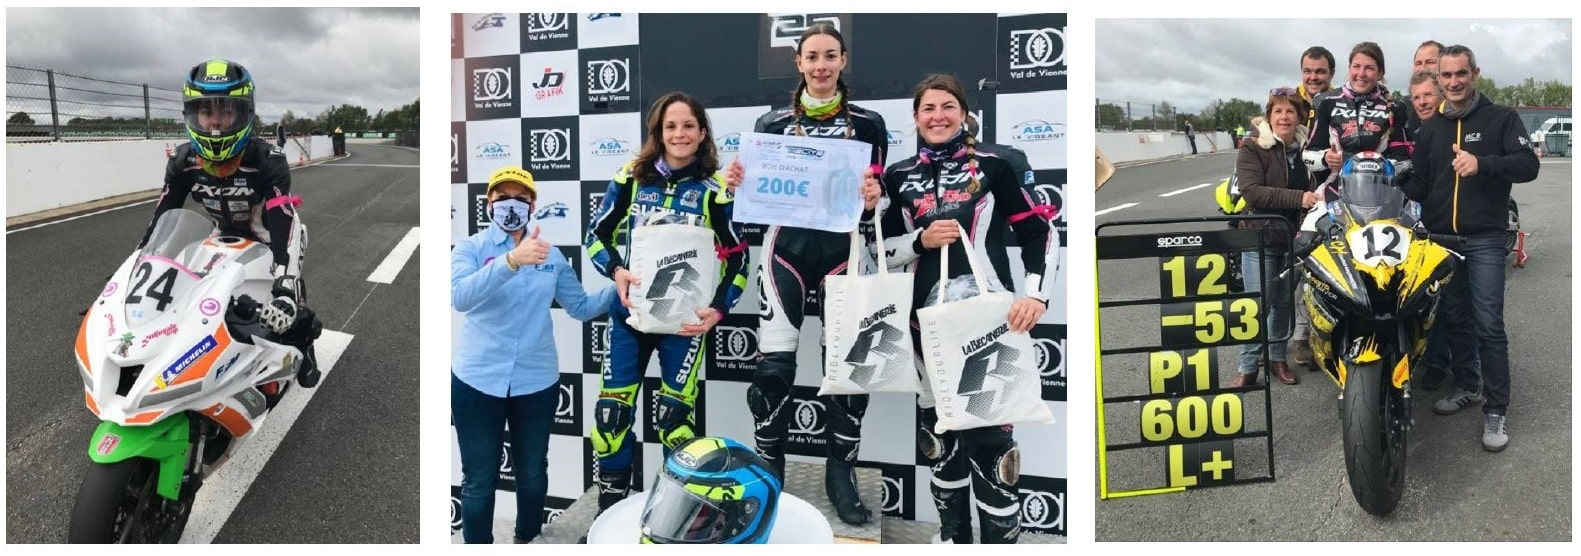 Podium scratch Women's Cup 2020 au Vigeant ©Aline Boury